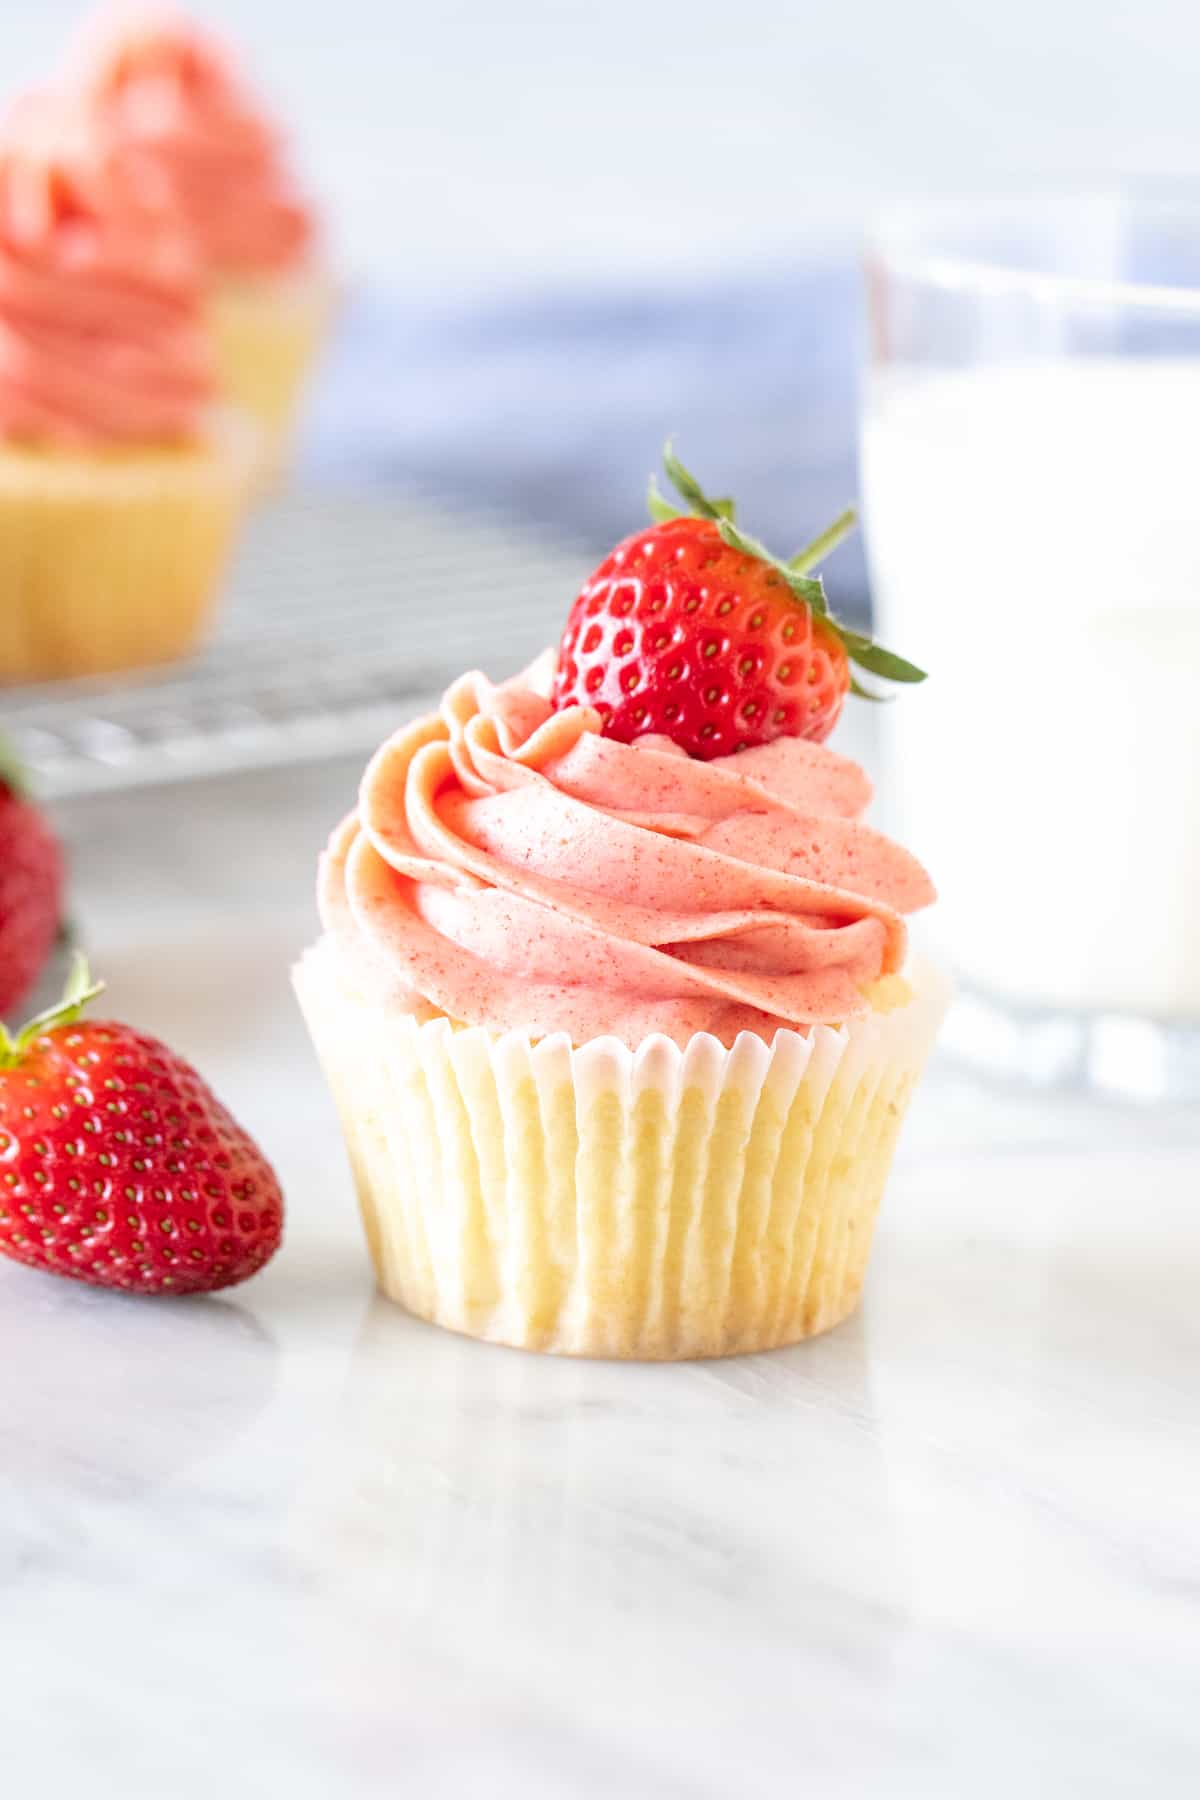 Vanilla cupcake with strawberry frosting and a glass of milk